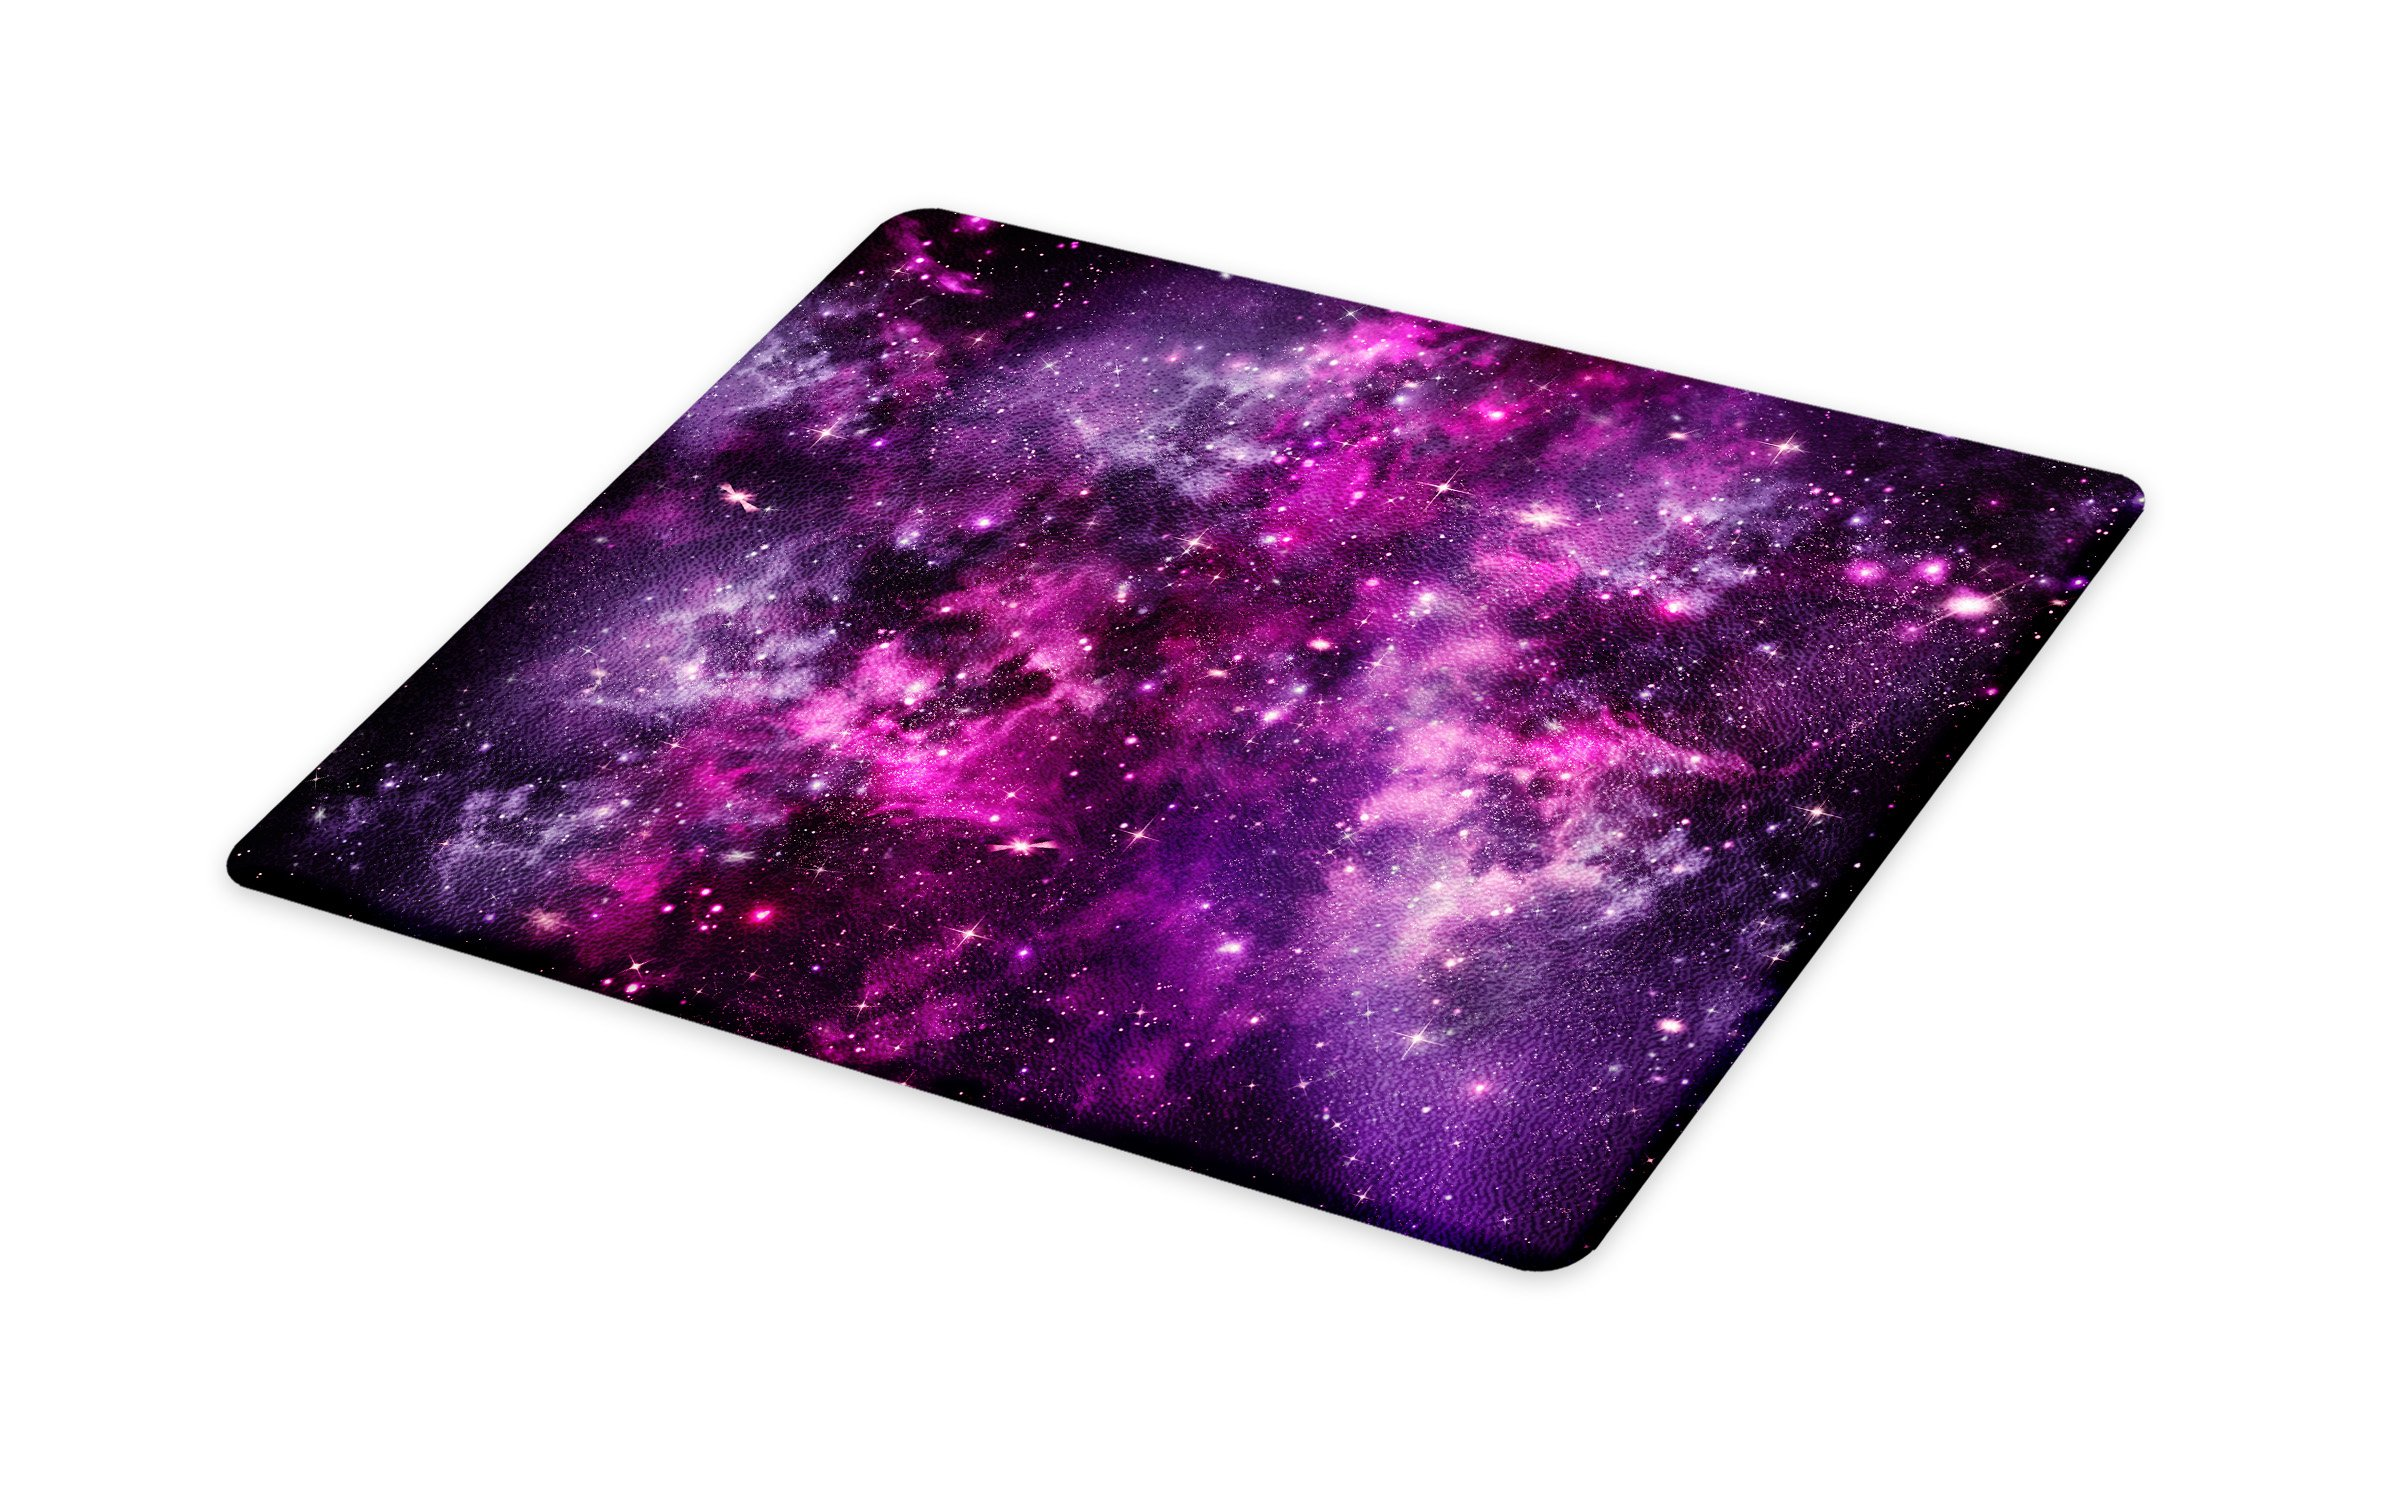 Lunarable Purple Cutting Board, Nebula Gas Cloud Deep Dark in Outer Space with Star Clusters Galaxy Infinity Solar Sky, Decorative Tempered Glass Cutting and Serving Board, Small Size, Purple